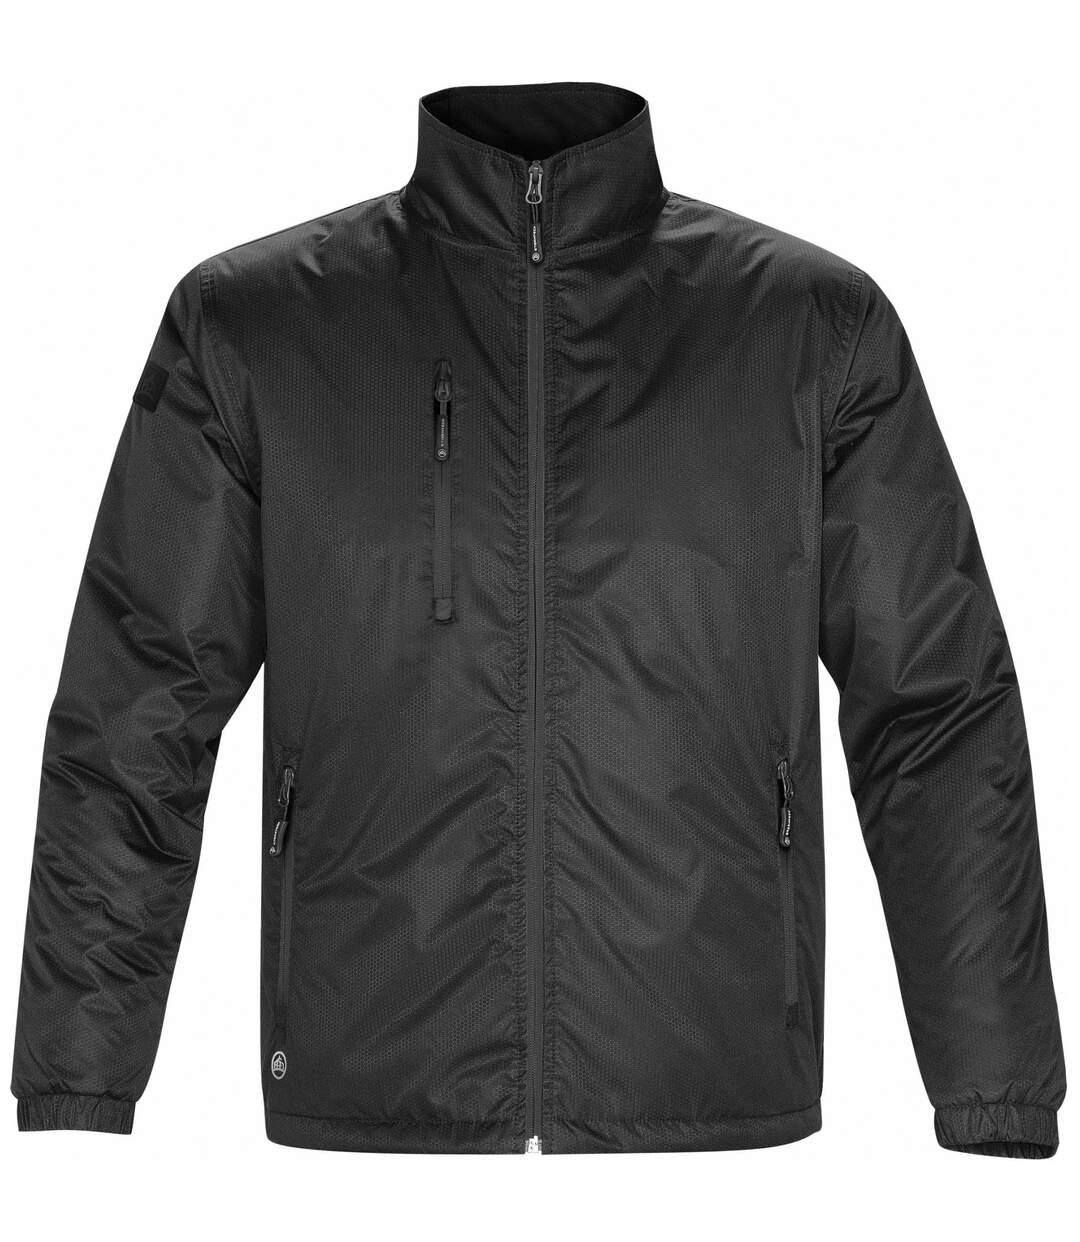 Stormtech Mens Axis Water Resistant Jacket (Black/Black) - UTBC2079